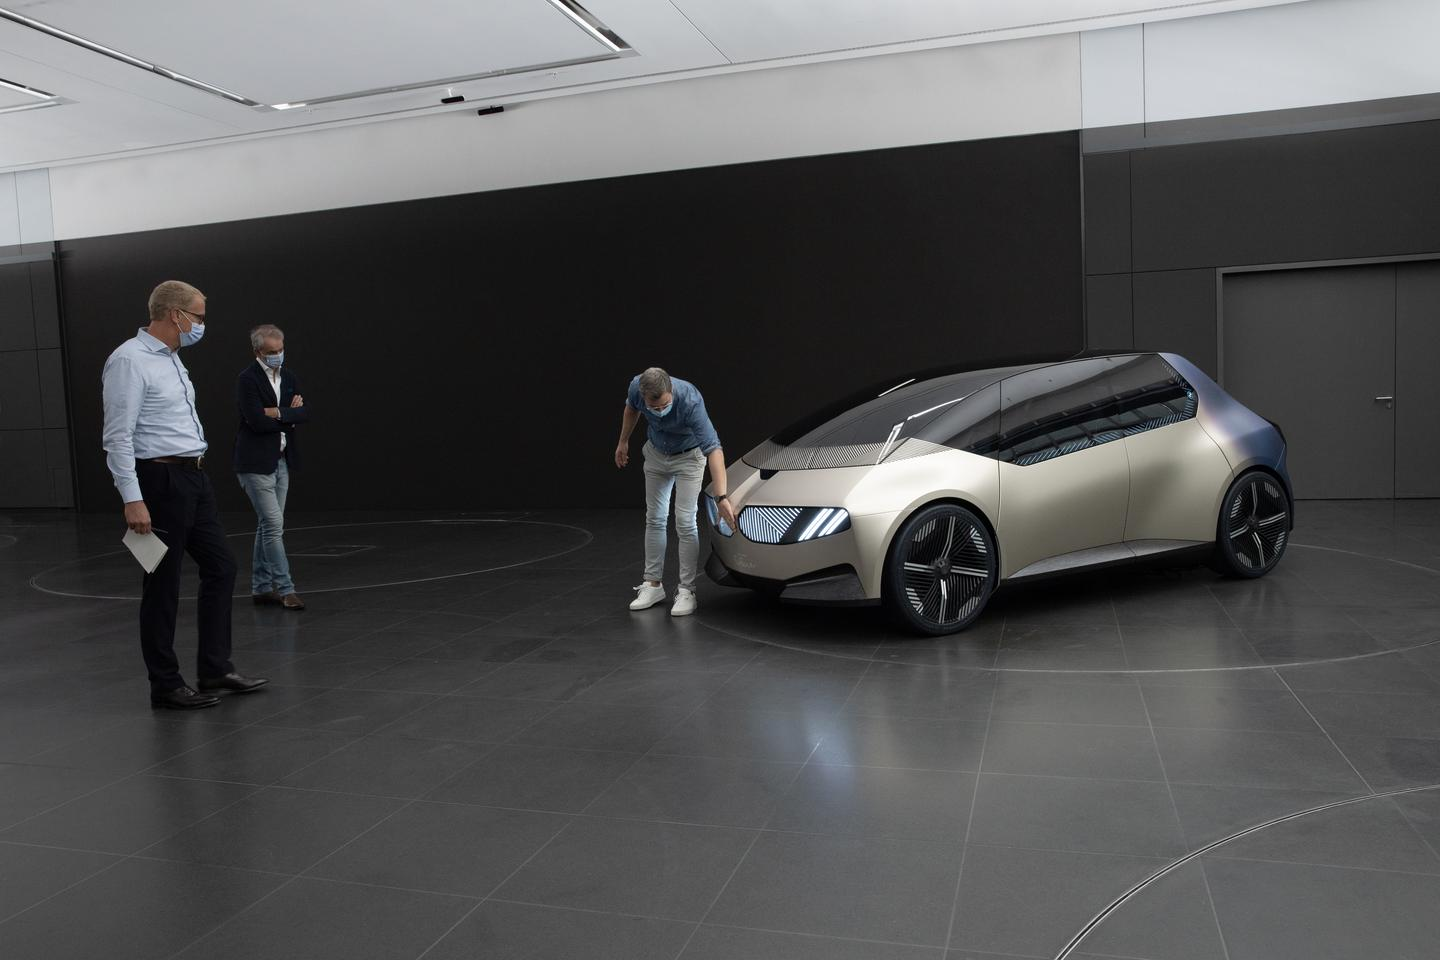 The physical BMW i Vision Circular mock-up is made ready for the show